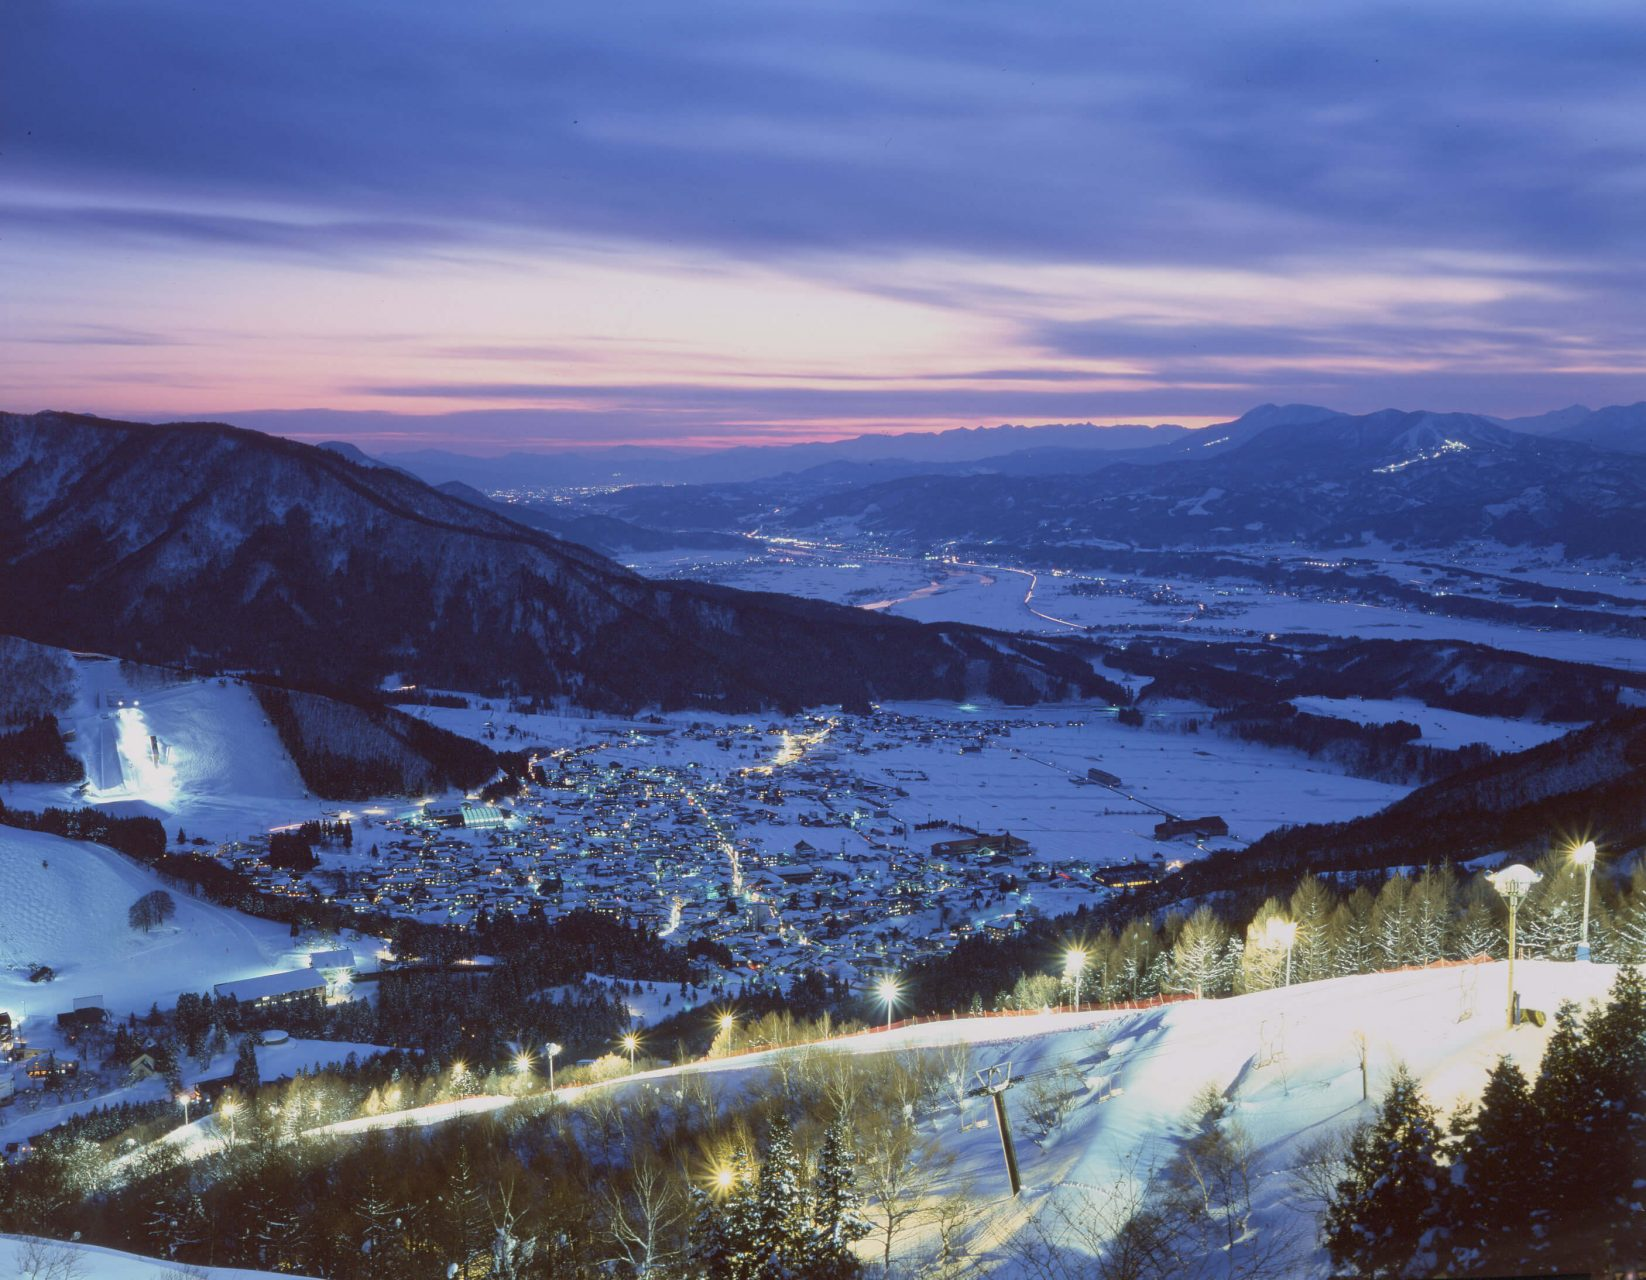 Nozawa Night Shot